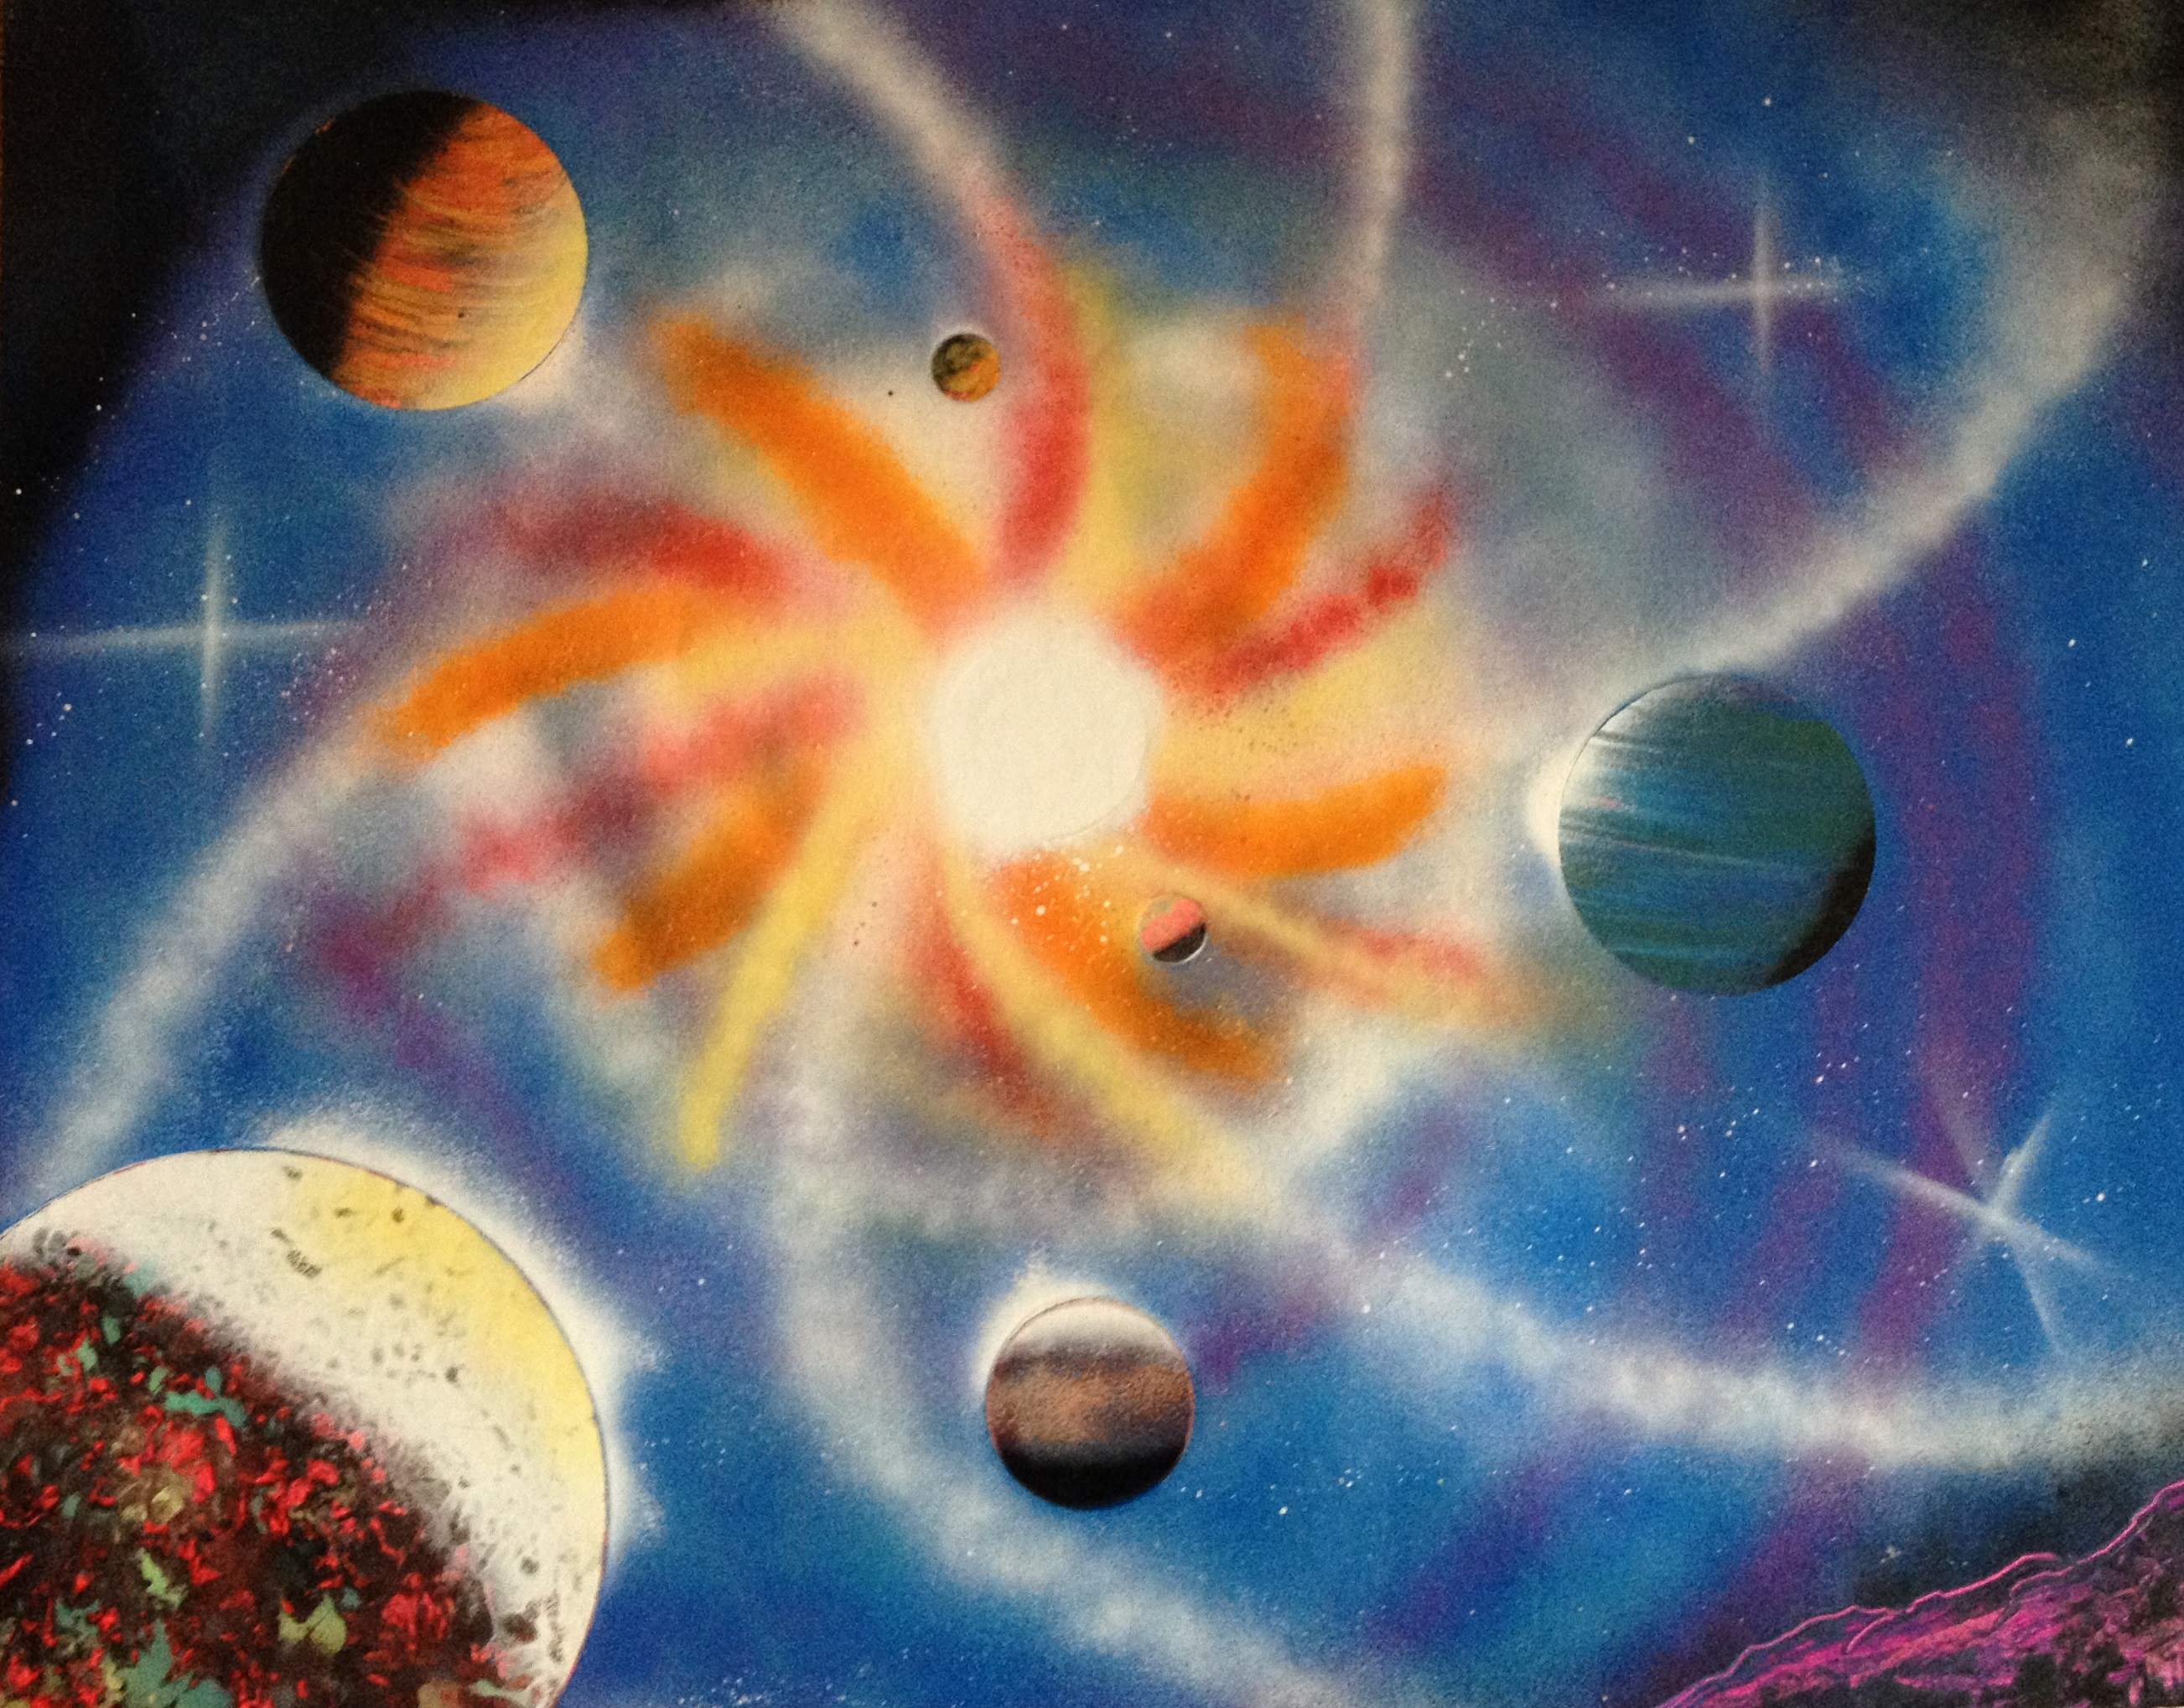 22 X 28 Spray Paint Art Five Planets And Galaxy Swirl